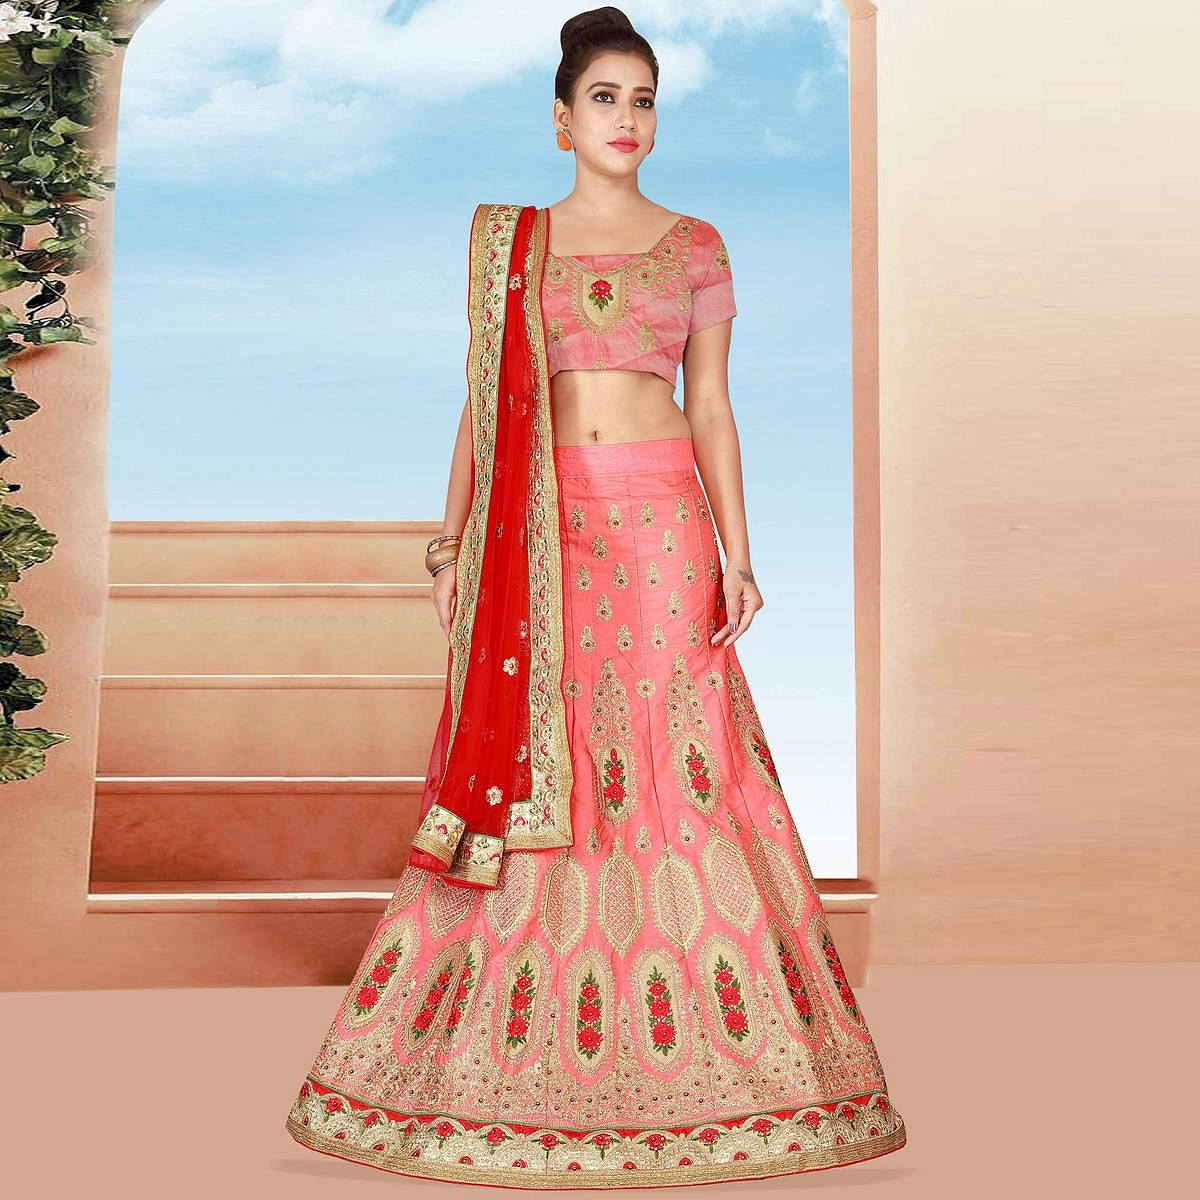 Precious Pink Colored Designer Heavy Embroidered Art Silk Lehenga